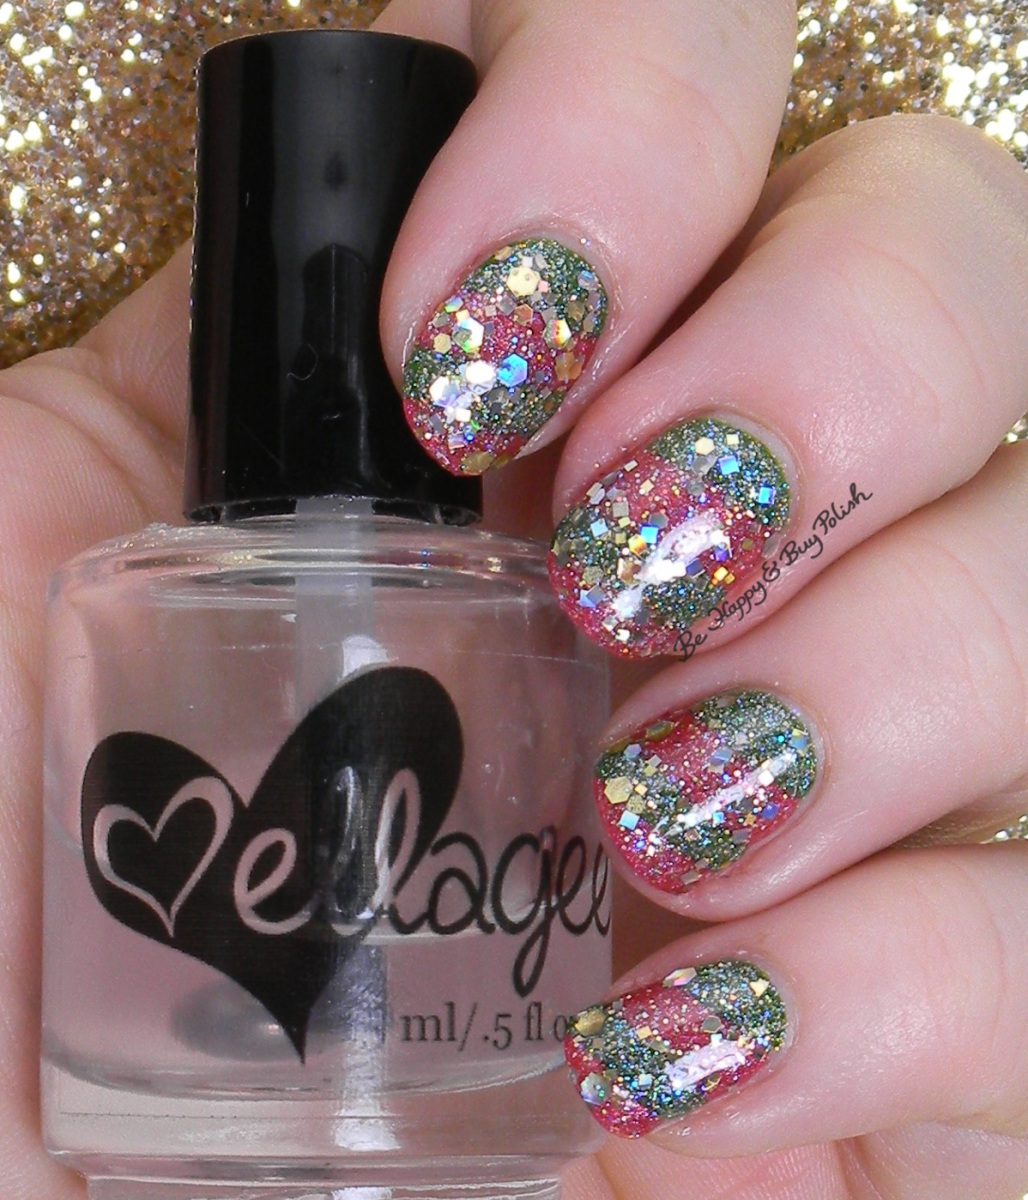 12 Days Of Christmas Nail Art: Glitter